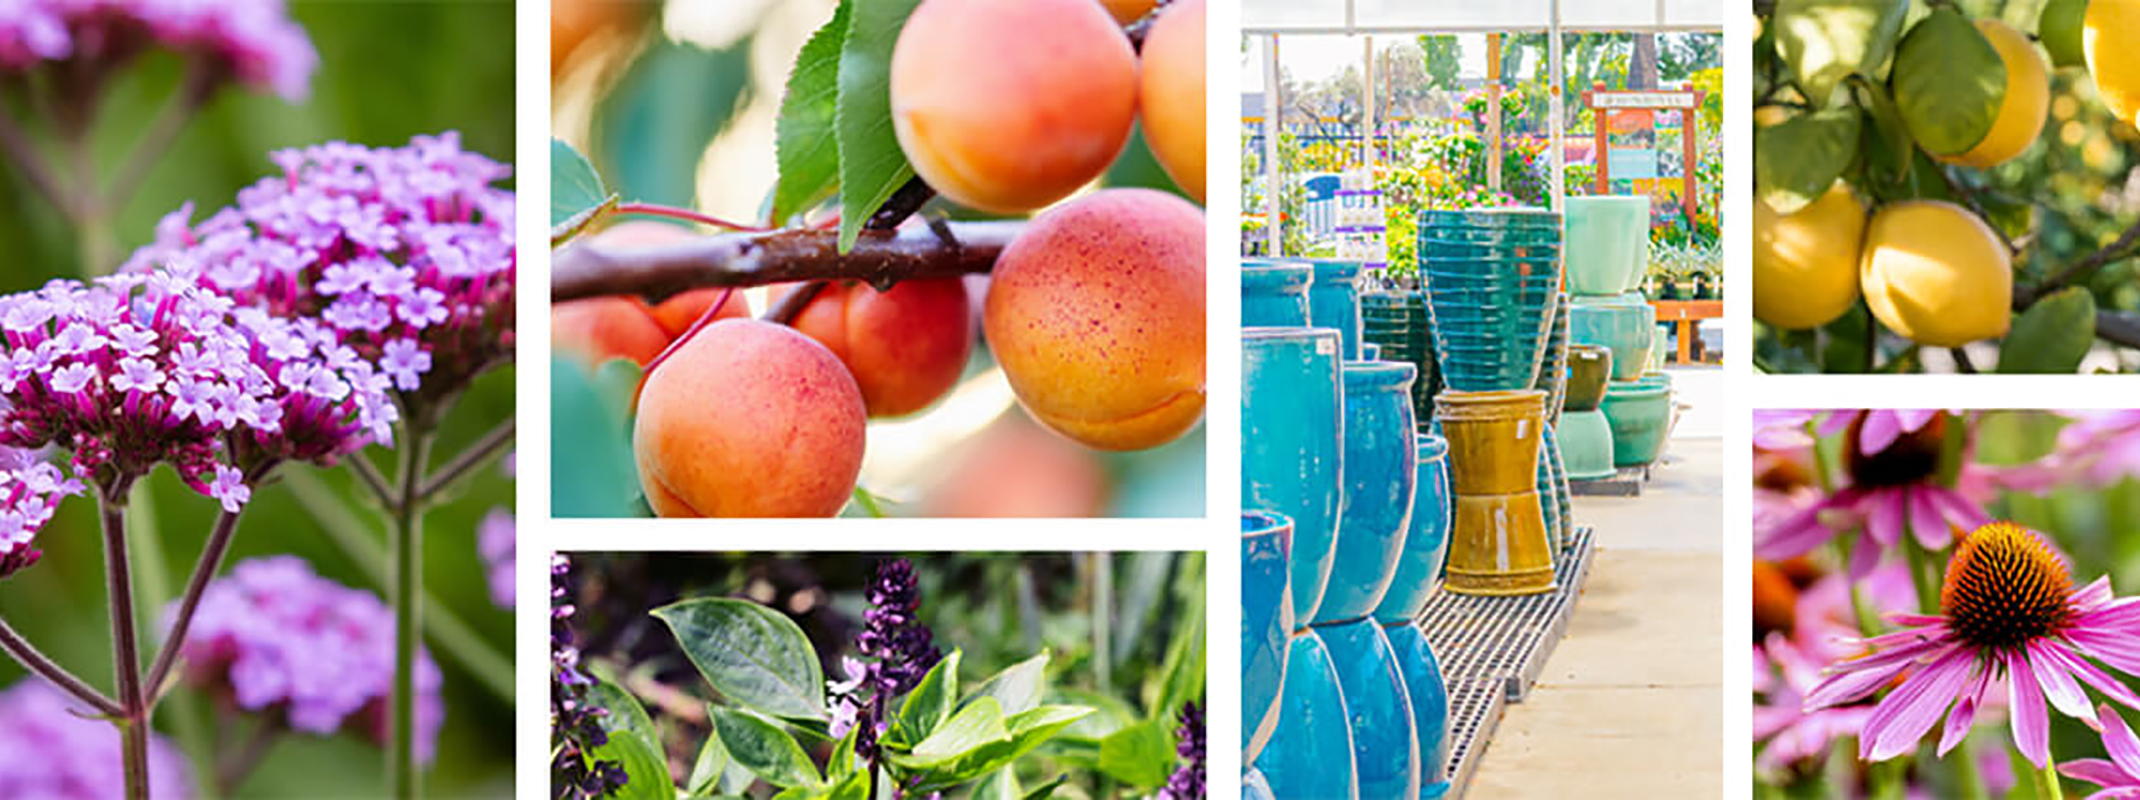 multiple images to show plants, fruit trees, herbs, pottery for the new SummerWinds locations in Novato and Dublin